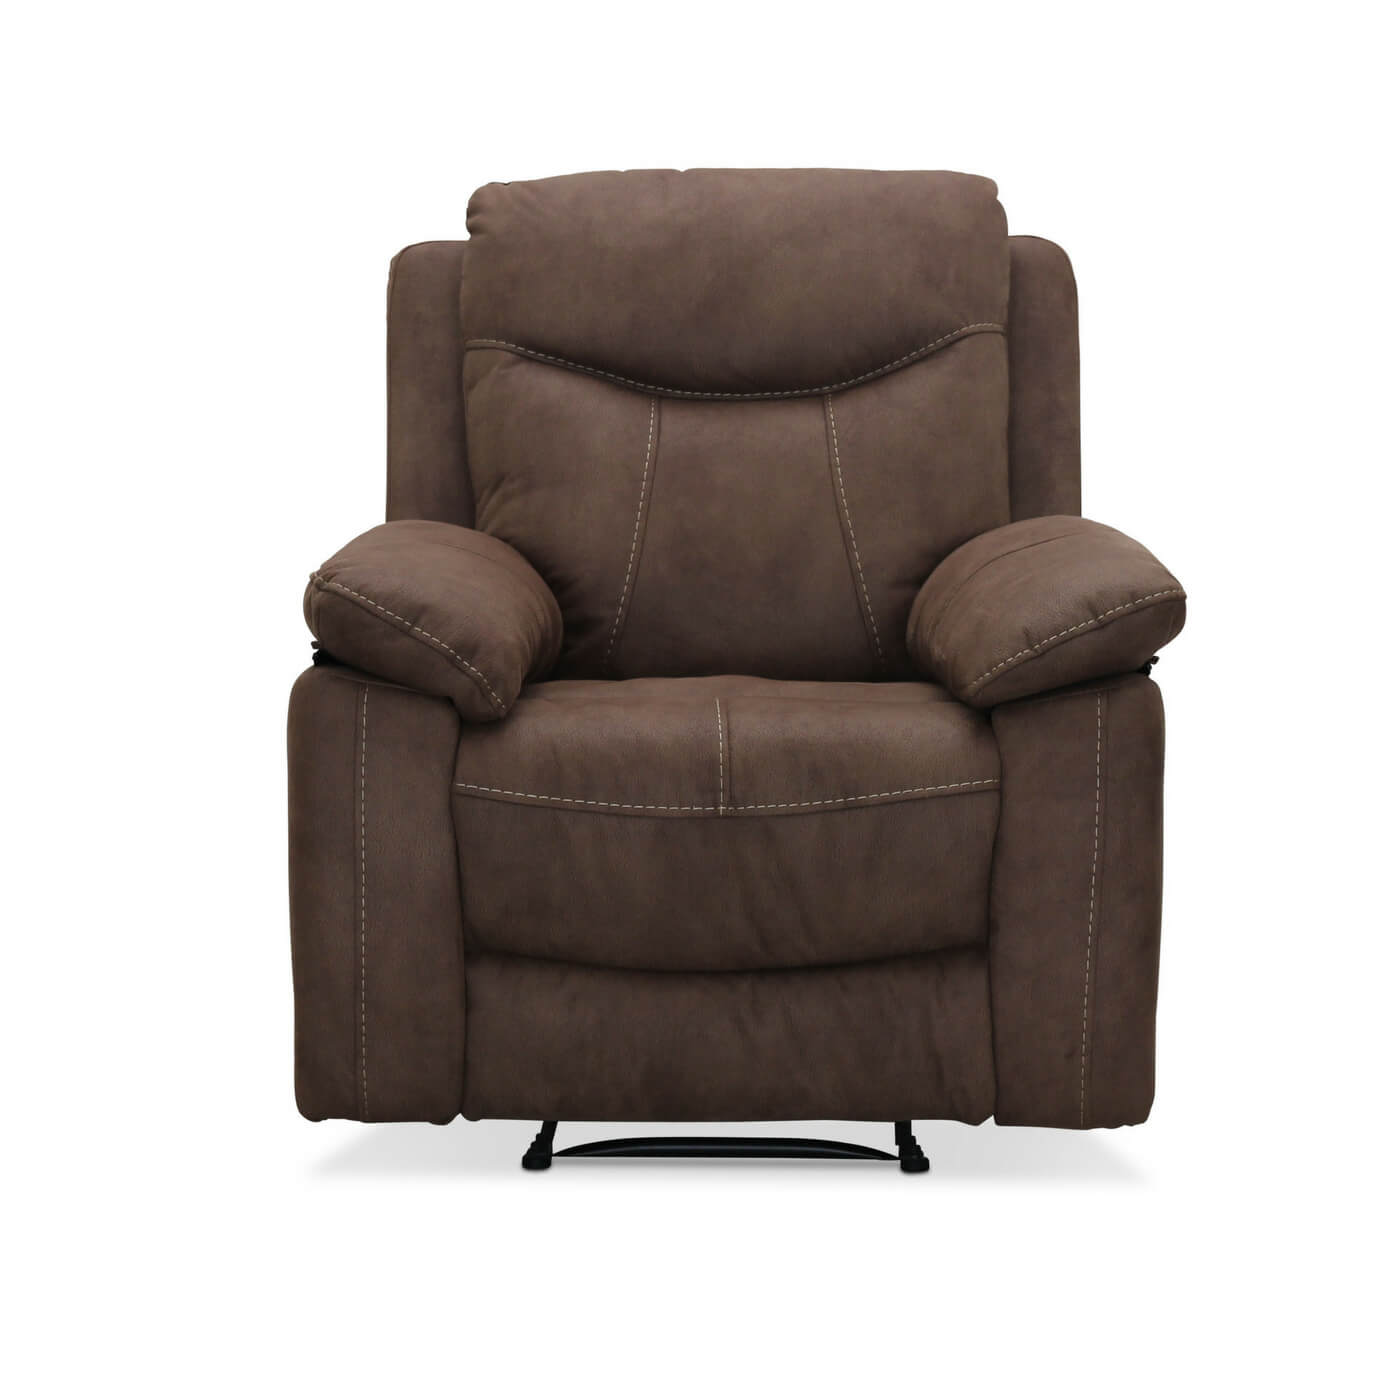 Image of   Boston recliner lænestol, brun